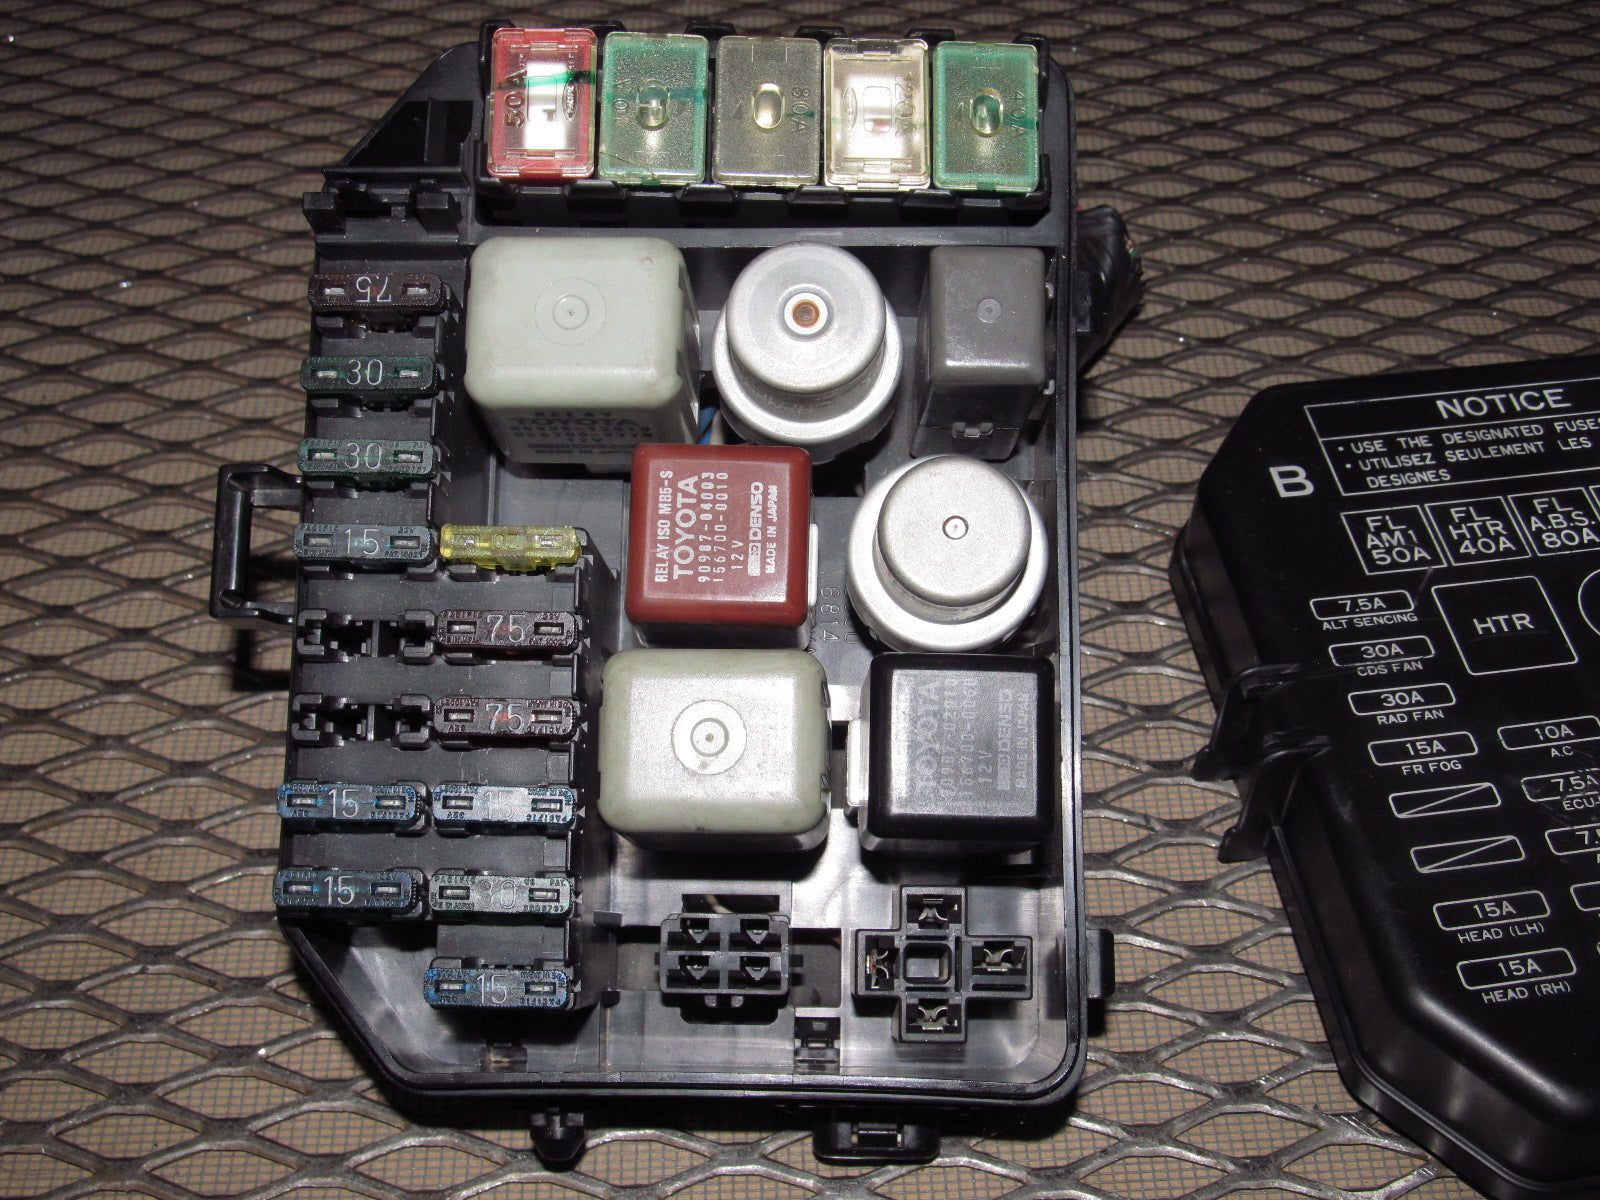 91 92 93 94 95 Toyota MR2 OEM Front In Hood Fuse Box ...  Toyota Mr Fuse Box on 92 toyota truck, 92 toyota previa, 92 toyota supra, 92 toyota celica, 92 toyota van, 92 toyota corolla, 92 toyota tacoma, 92 toyota rav4, 92 toyota echo, 92 toyota prado, 92 toyota prerunner, 92 toyota avalon, 92 toyota paseo, 92 toyota 4 runner, 92 toyota land cruiser, 92 toyota chaser, 92 toyota hilux, 92 toyota camry dx,